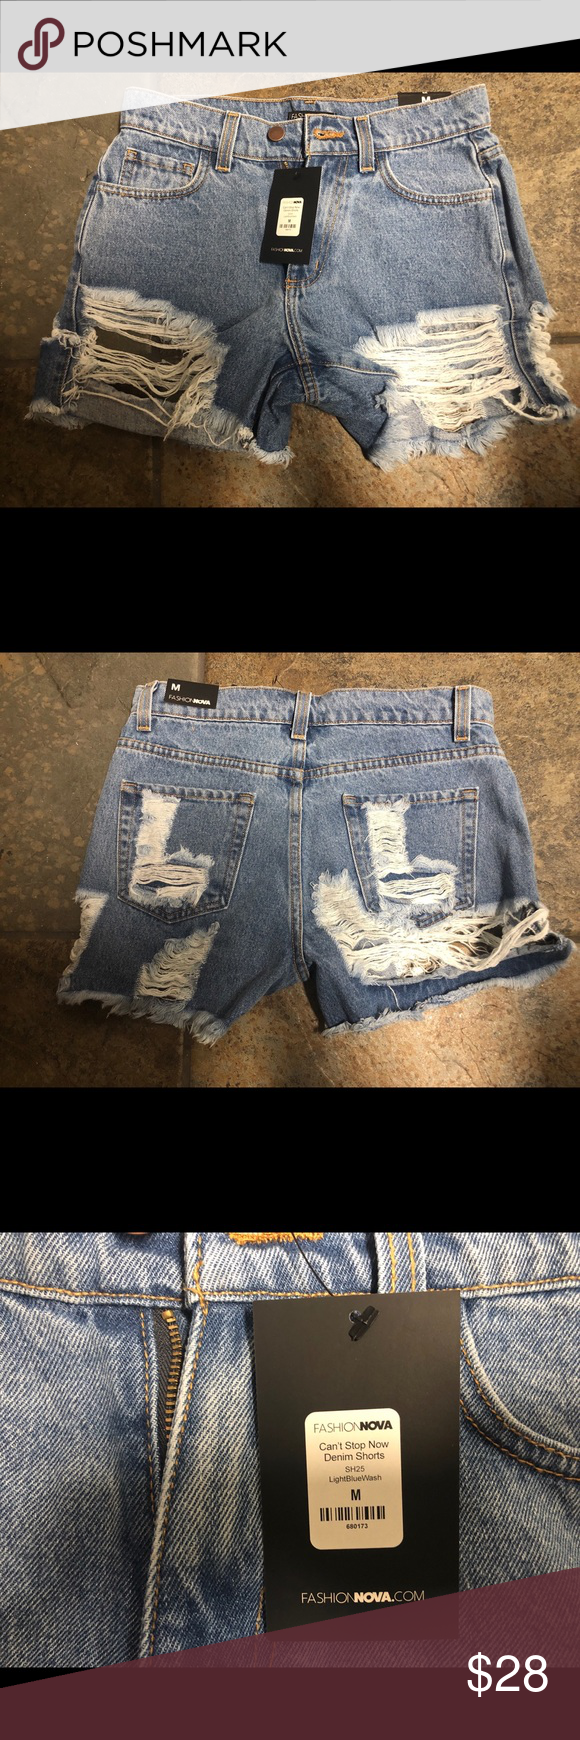 Fashion Nova Ripped Shorts Can T Stop Now Ripped Shorts Fashion Nova Womens Fashion Shopping